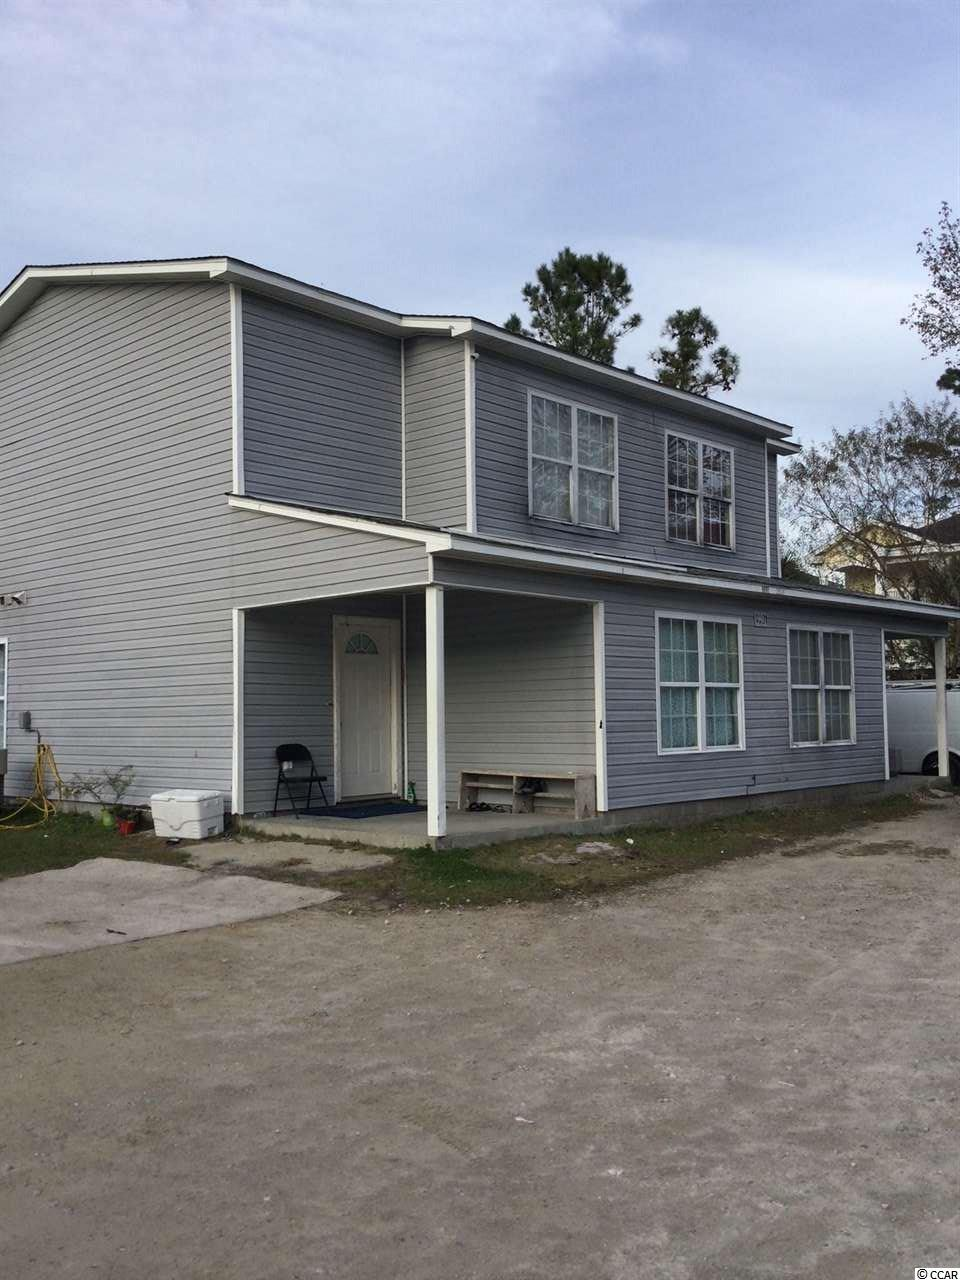 Medium income neighborhood with many duplexes and a dead-end, paved street eliminating heavy traffic flow.  Accesses by school buses.  Close to Village of Little River and waterfront.  County Fire/Rescue Station less than 1 mile.  Beach within 4 miles.